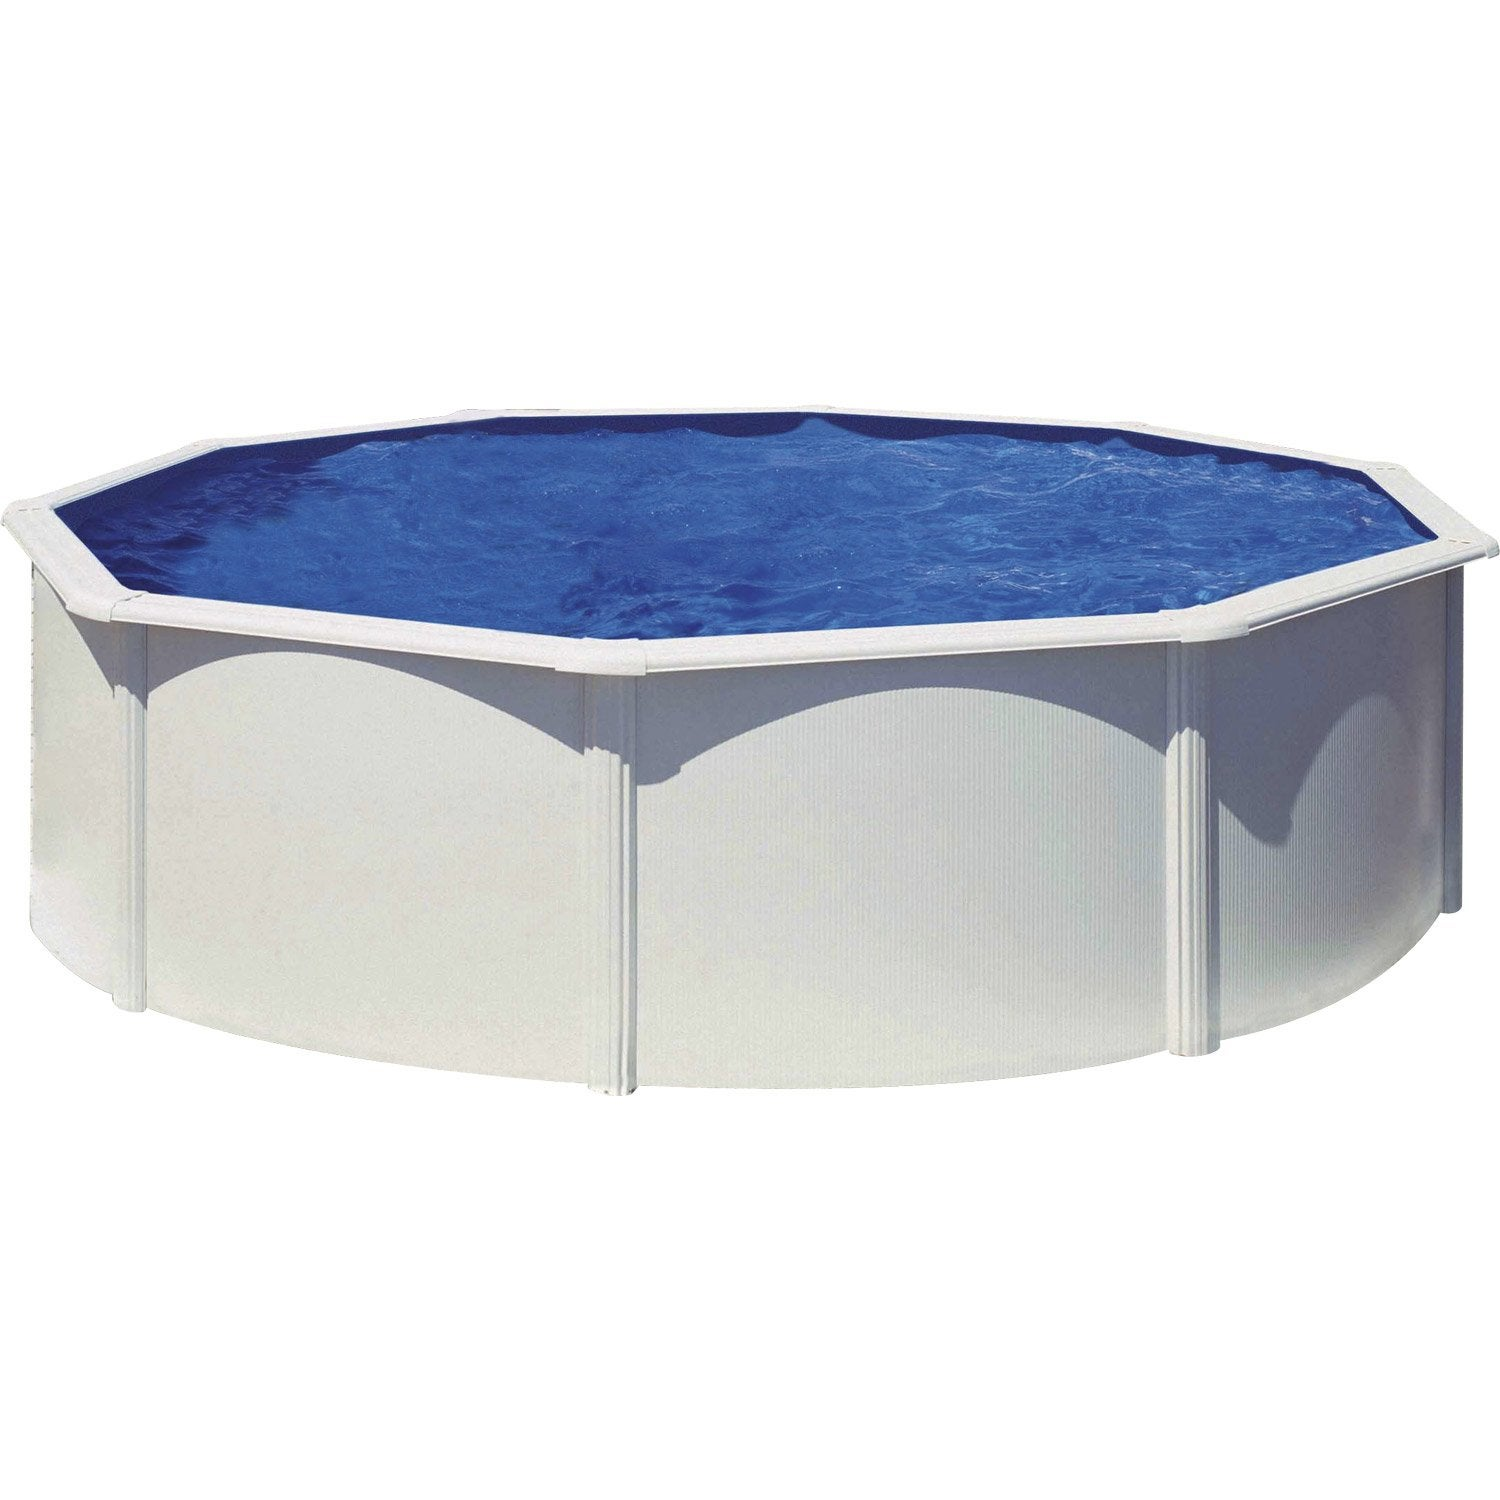 bache piscine intex 3.66 leroy merlin